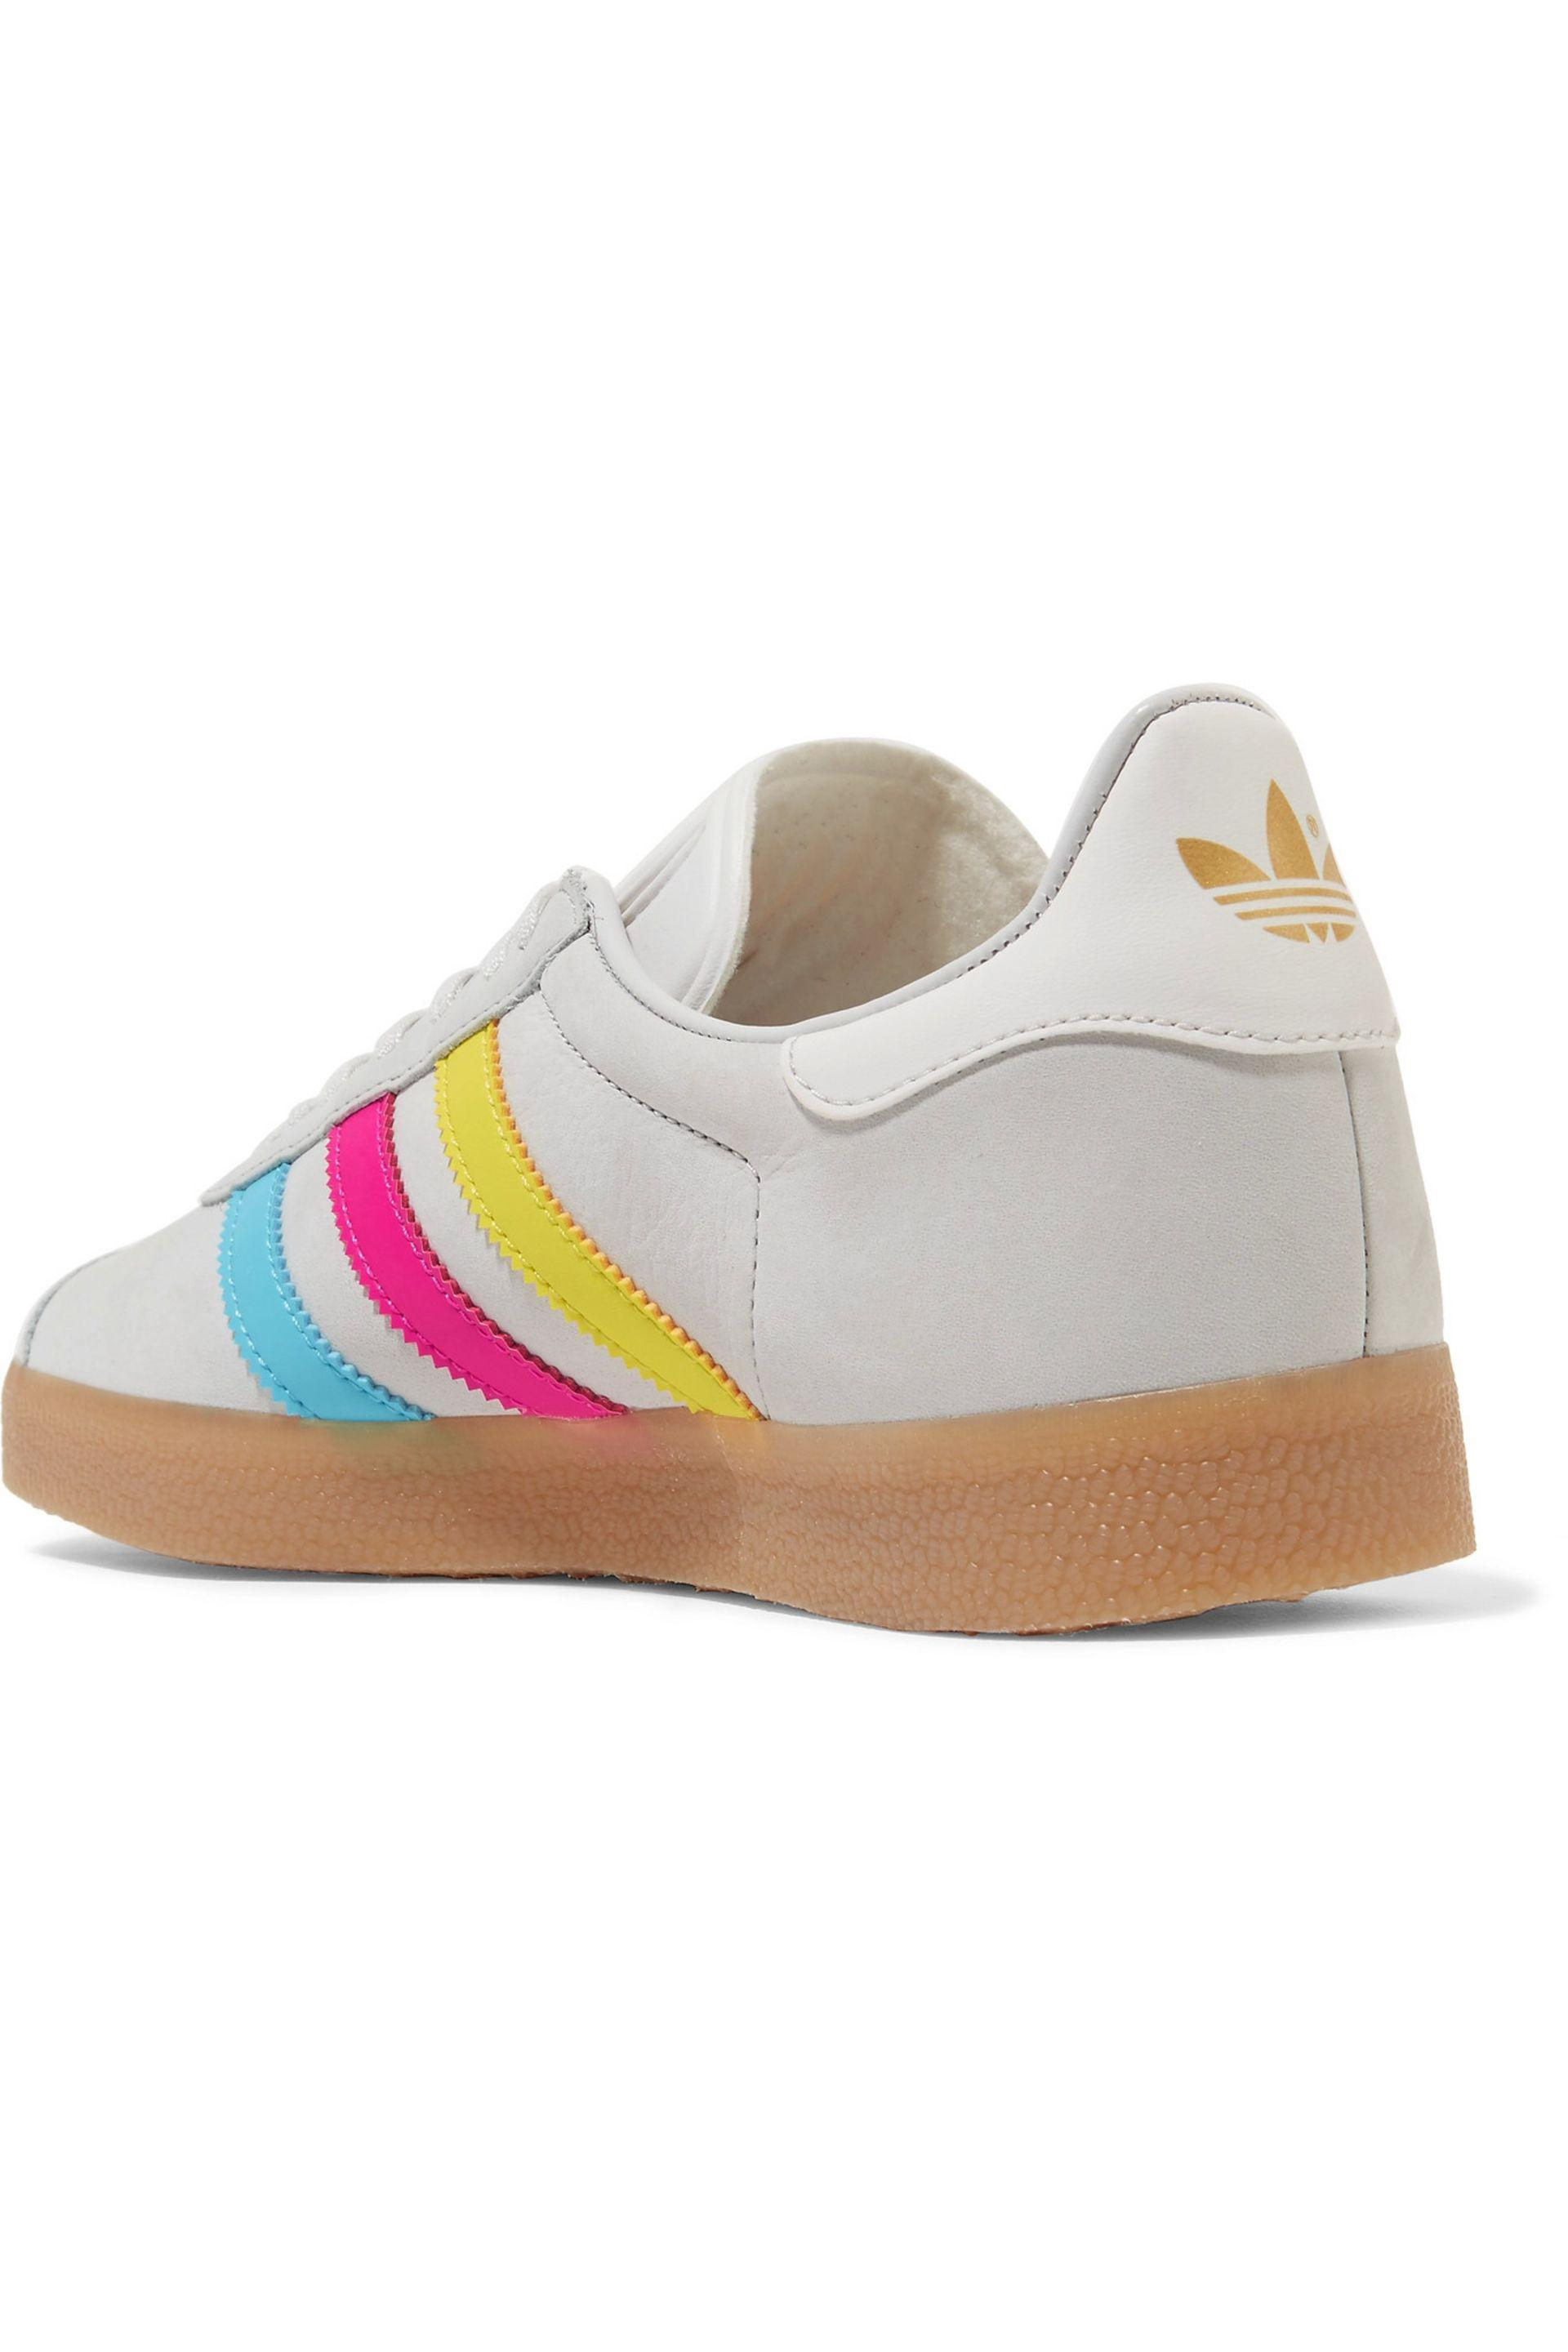 c82e4db10e1537 Lyst - adidas Originals Gazelle Leather-trimmed Nubuck Sneakers in Gray